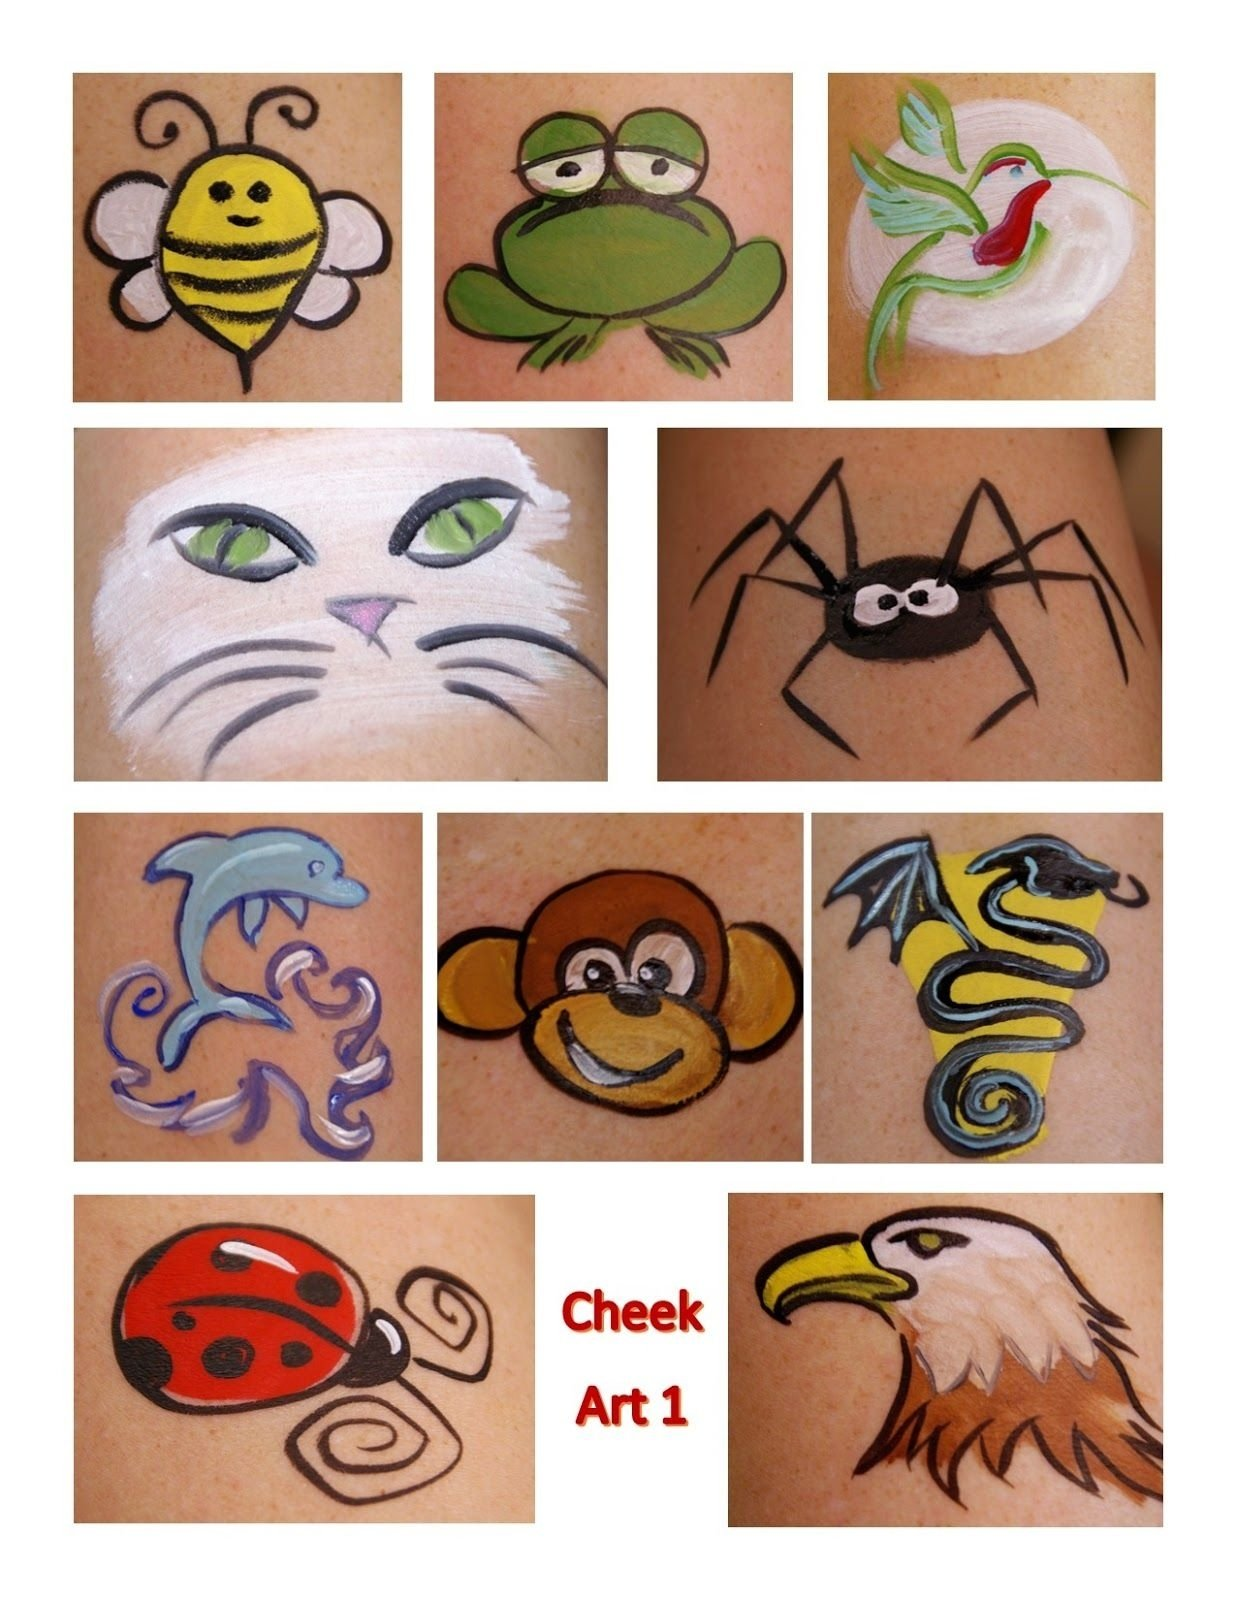 10 Stylish Face Painting Ideas For Kids Cheeks easy simple design face painting on cheek simple face painting 1 2020